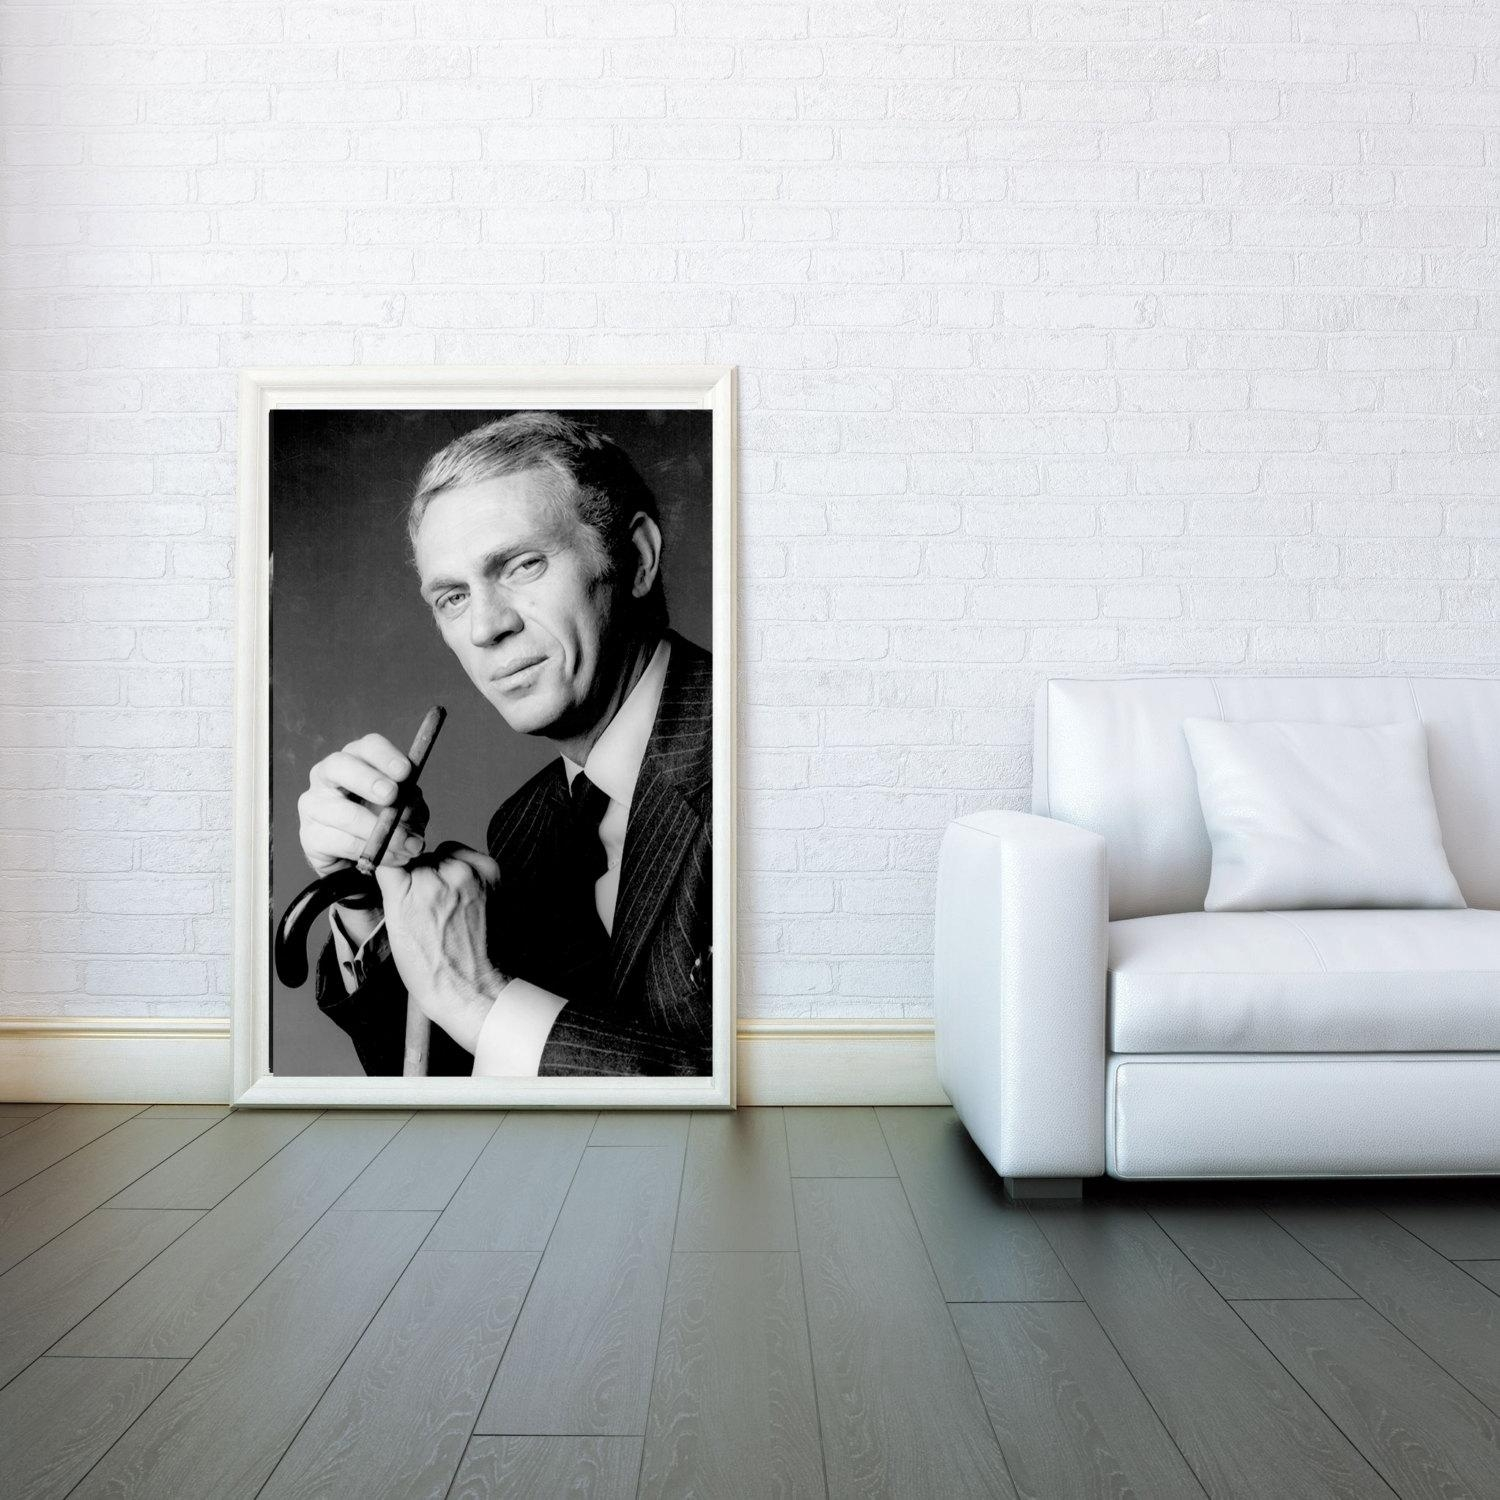 Steve Mcqueen Decorative Arts Prints & Posters Wall Art Print Inside Steve Mcqueen Wall Art (View 8 of 20)